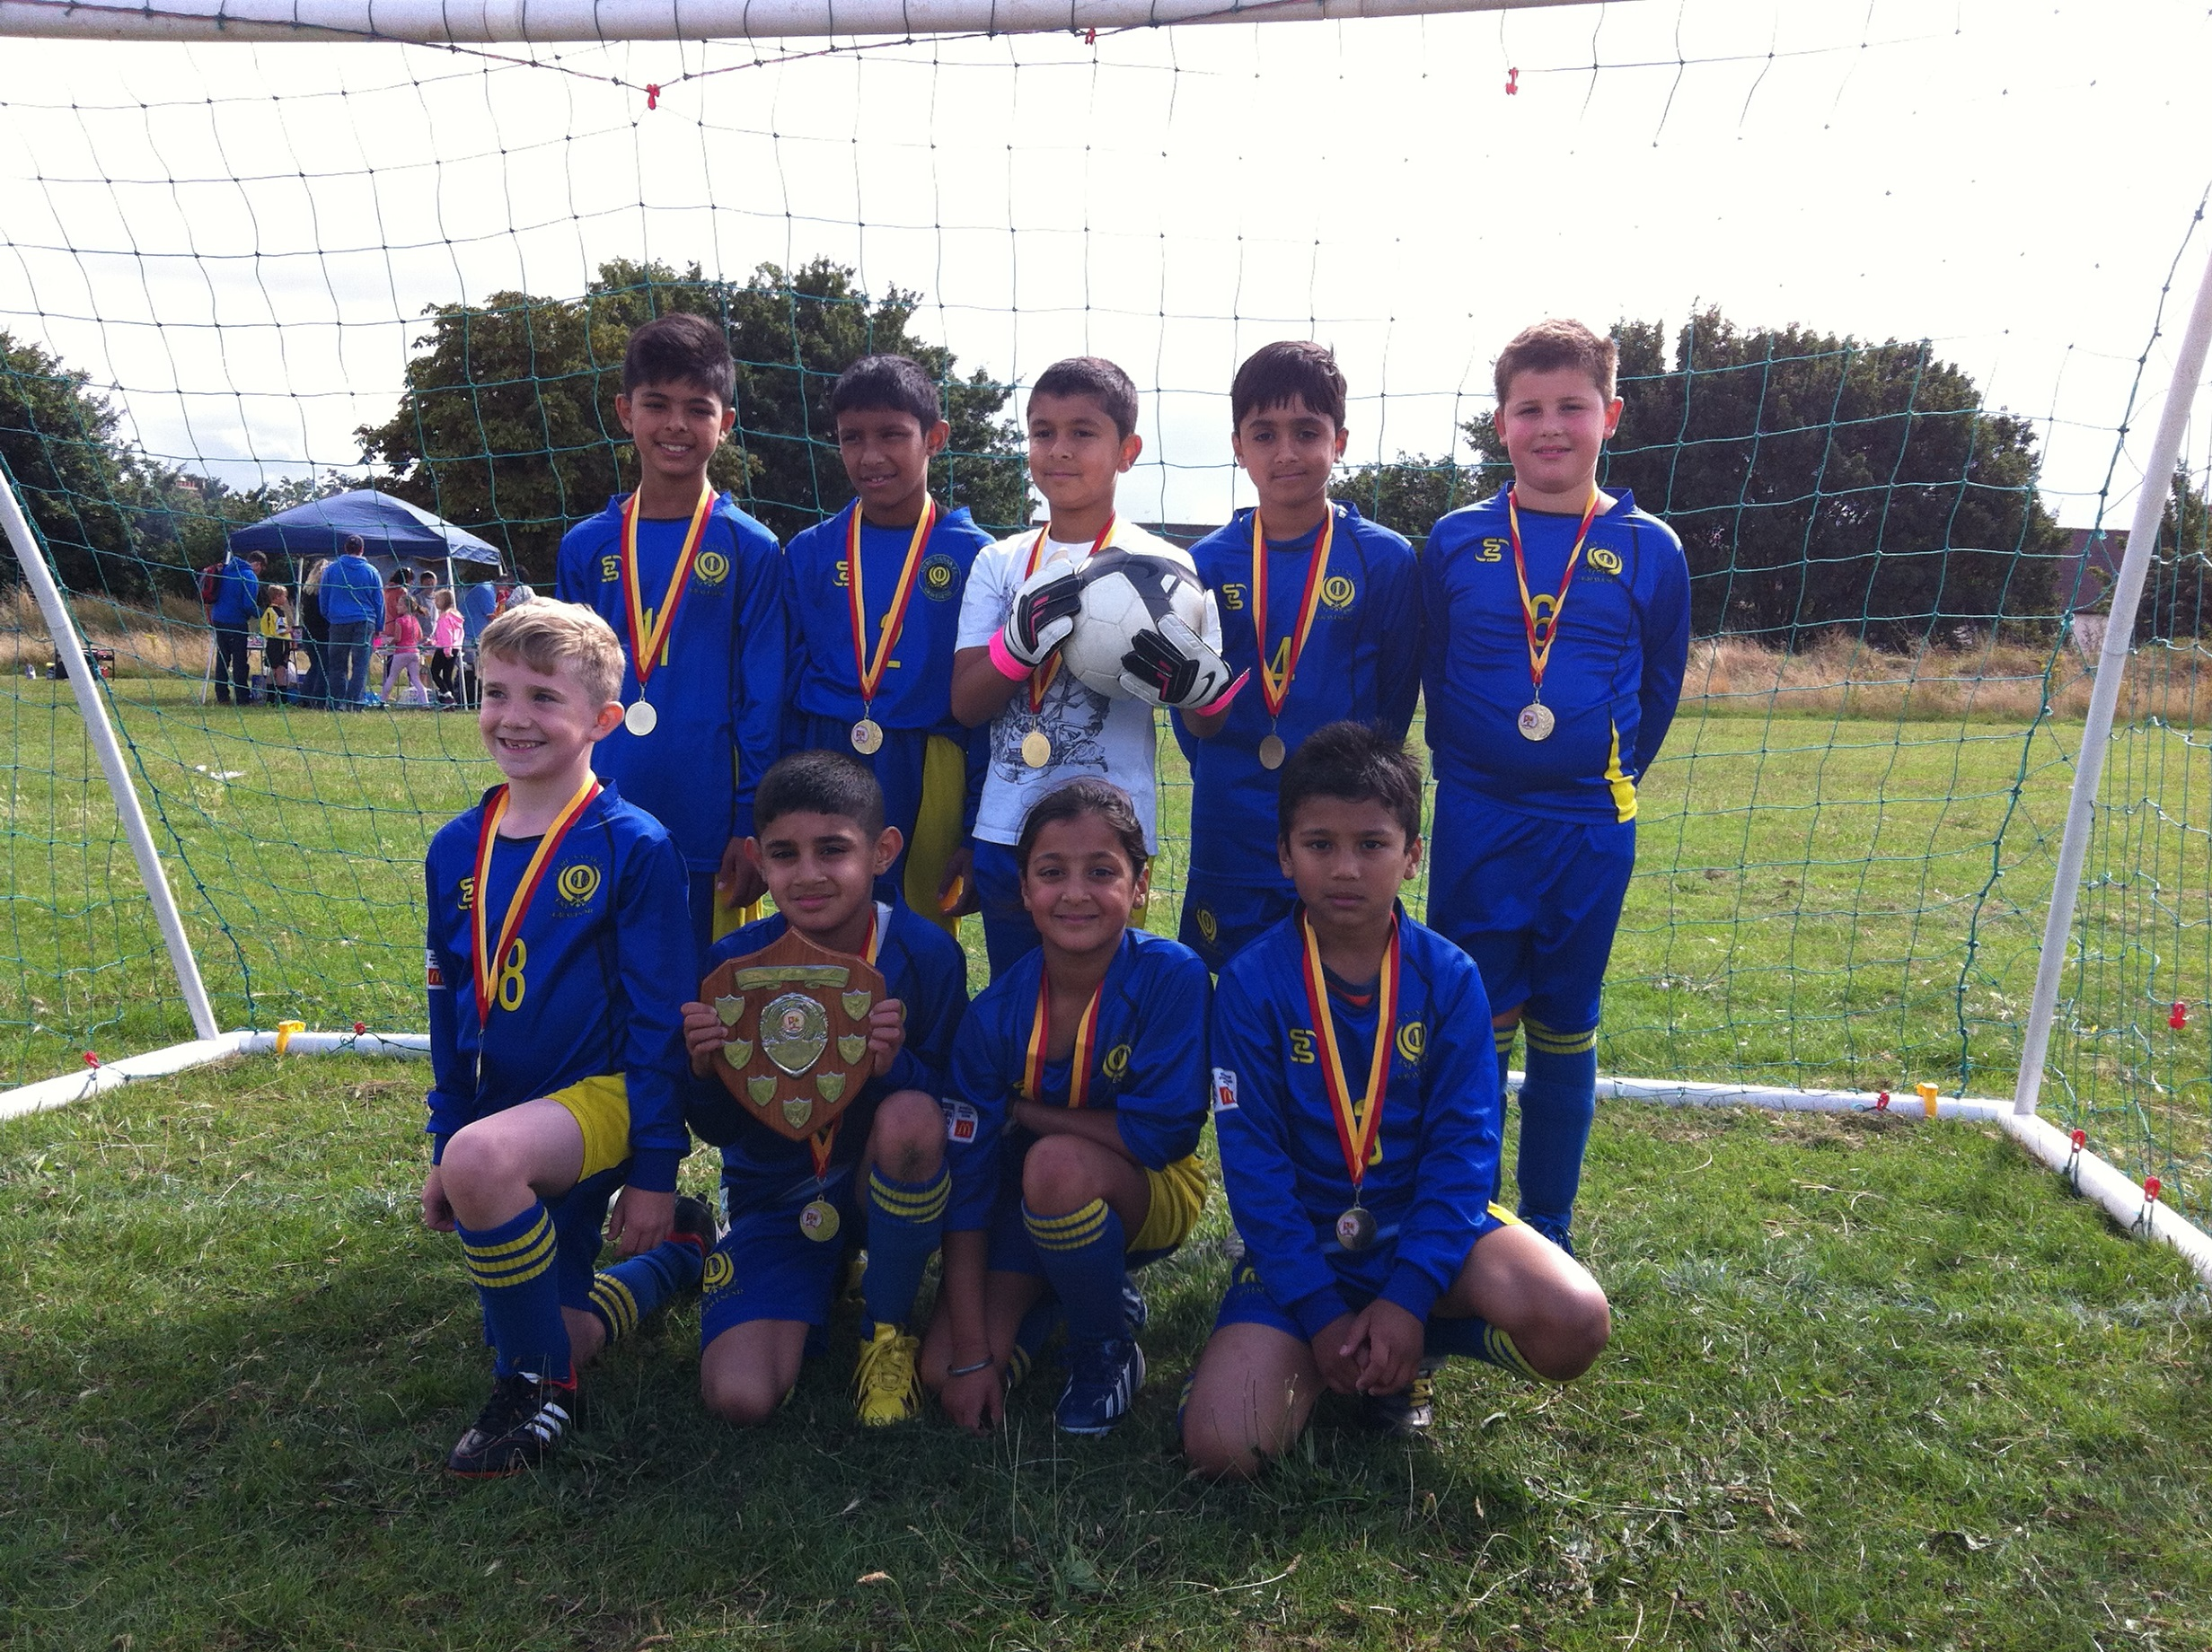 2013/14 Under 9's Charity Shield Winners